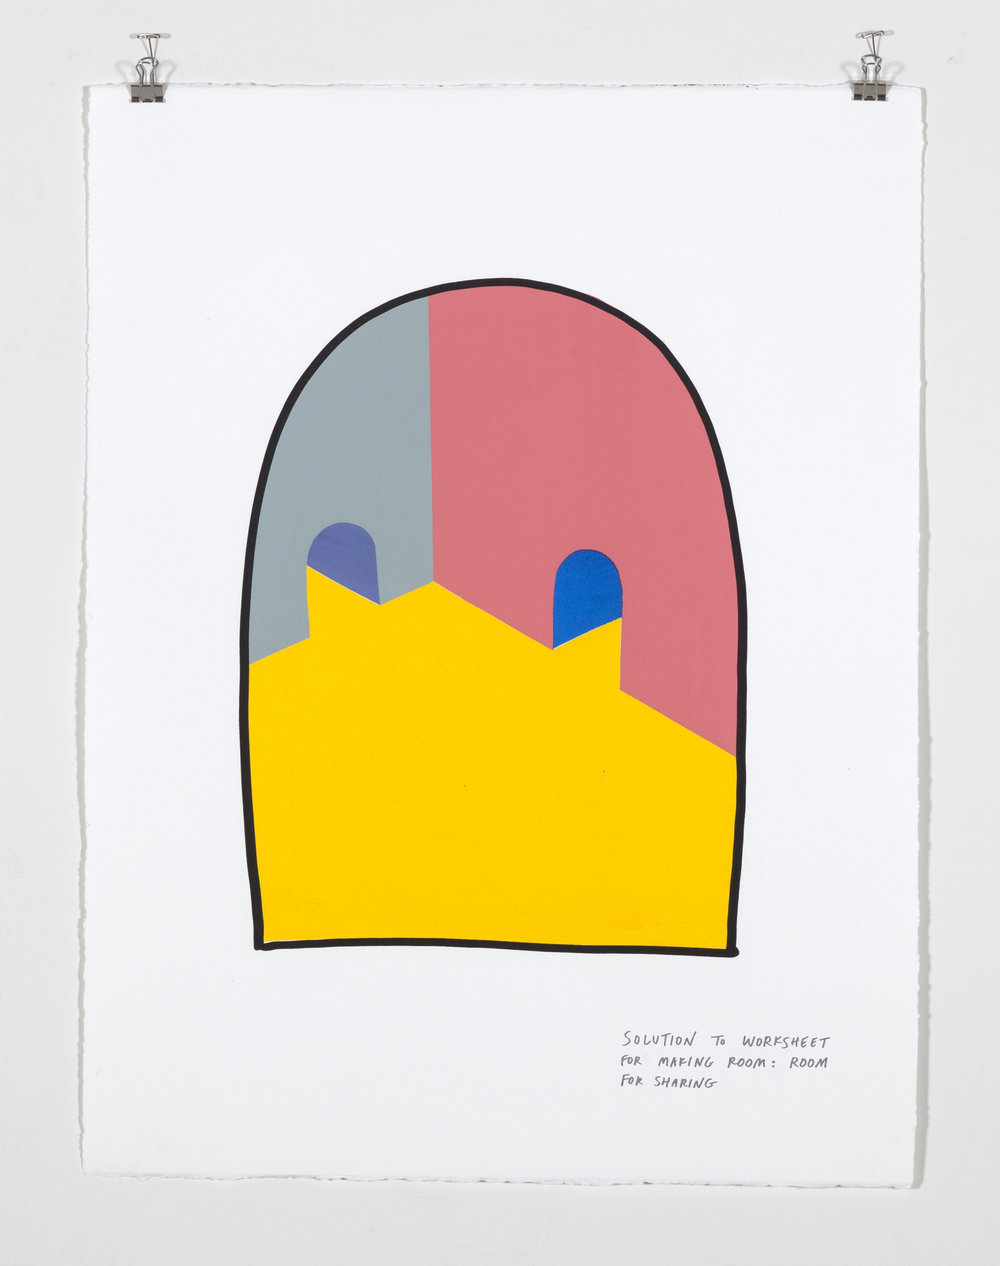 Solution to Worksheet for Making Room: Room for Sharing,    2018  Seven color silkscreen print on paper 19 7/8 x 25 7/8 inches